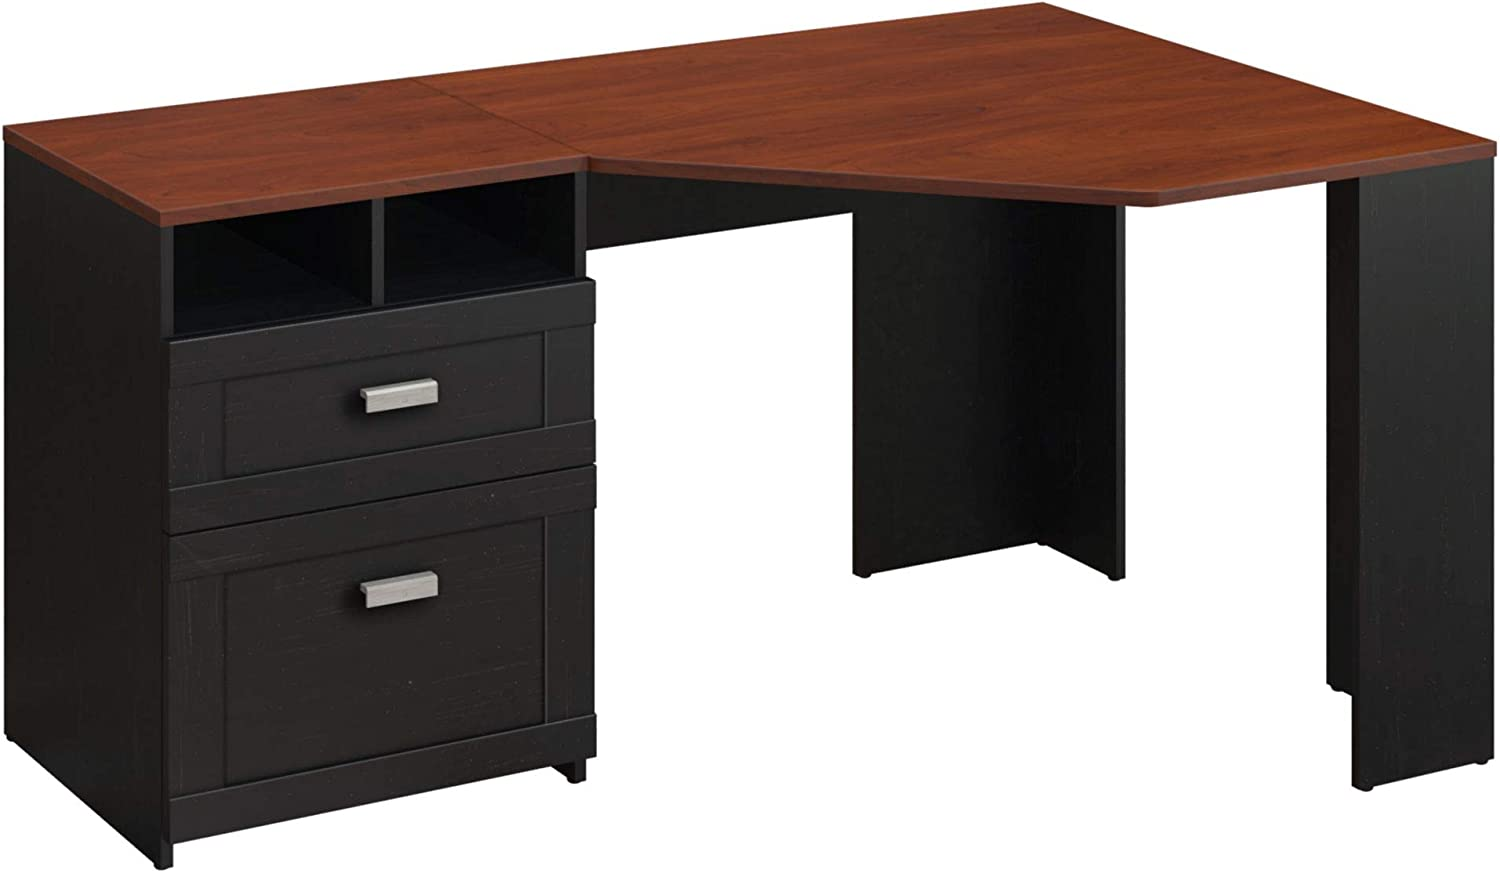 Bush Furniture Wheaton Corner Desk, Antique Black Hansen Cherry